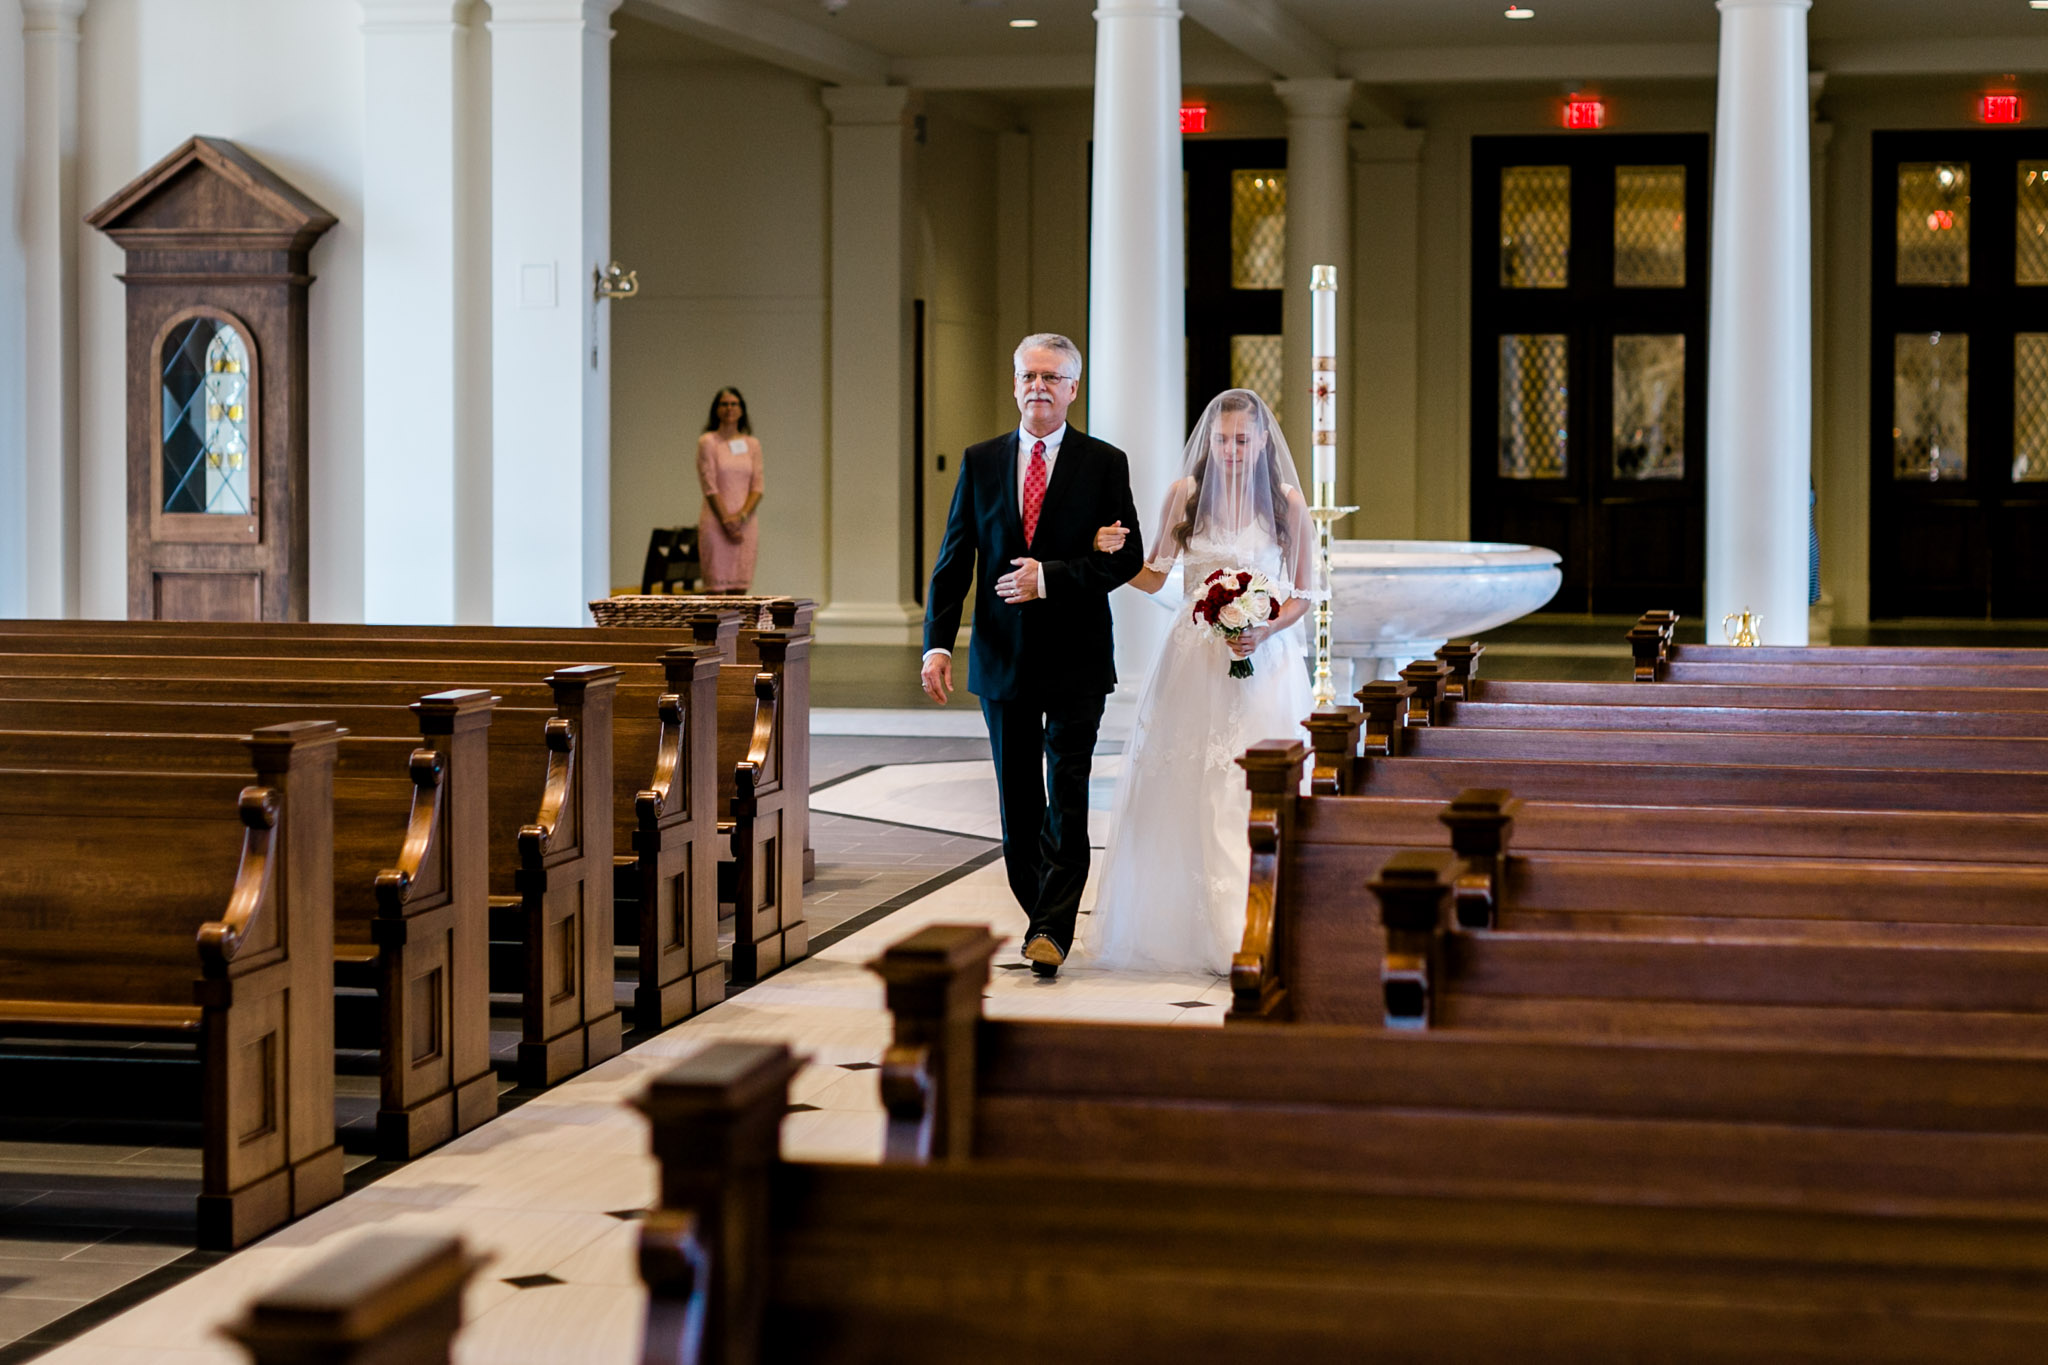 Father walking bride down the aisle | Holy Name of Jesus Cathedral | Raleigh Wedding Photographer | By G. Lin Photography